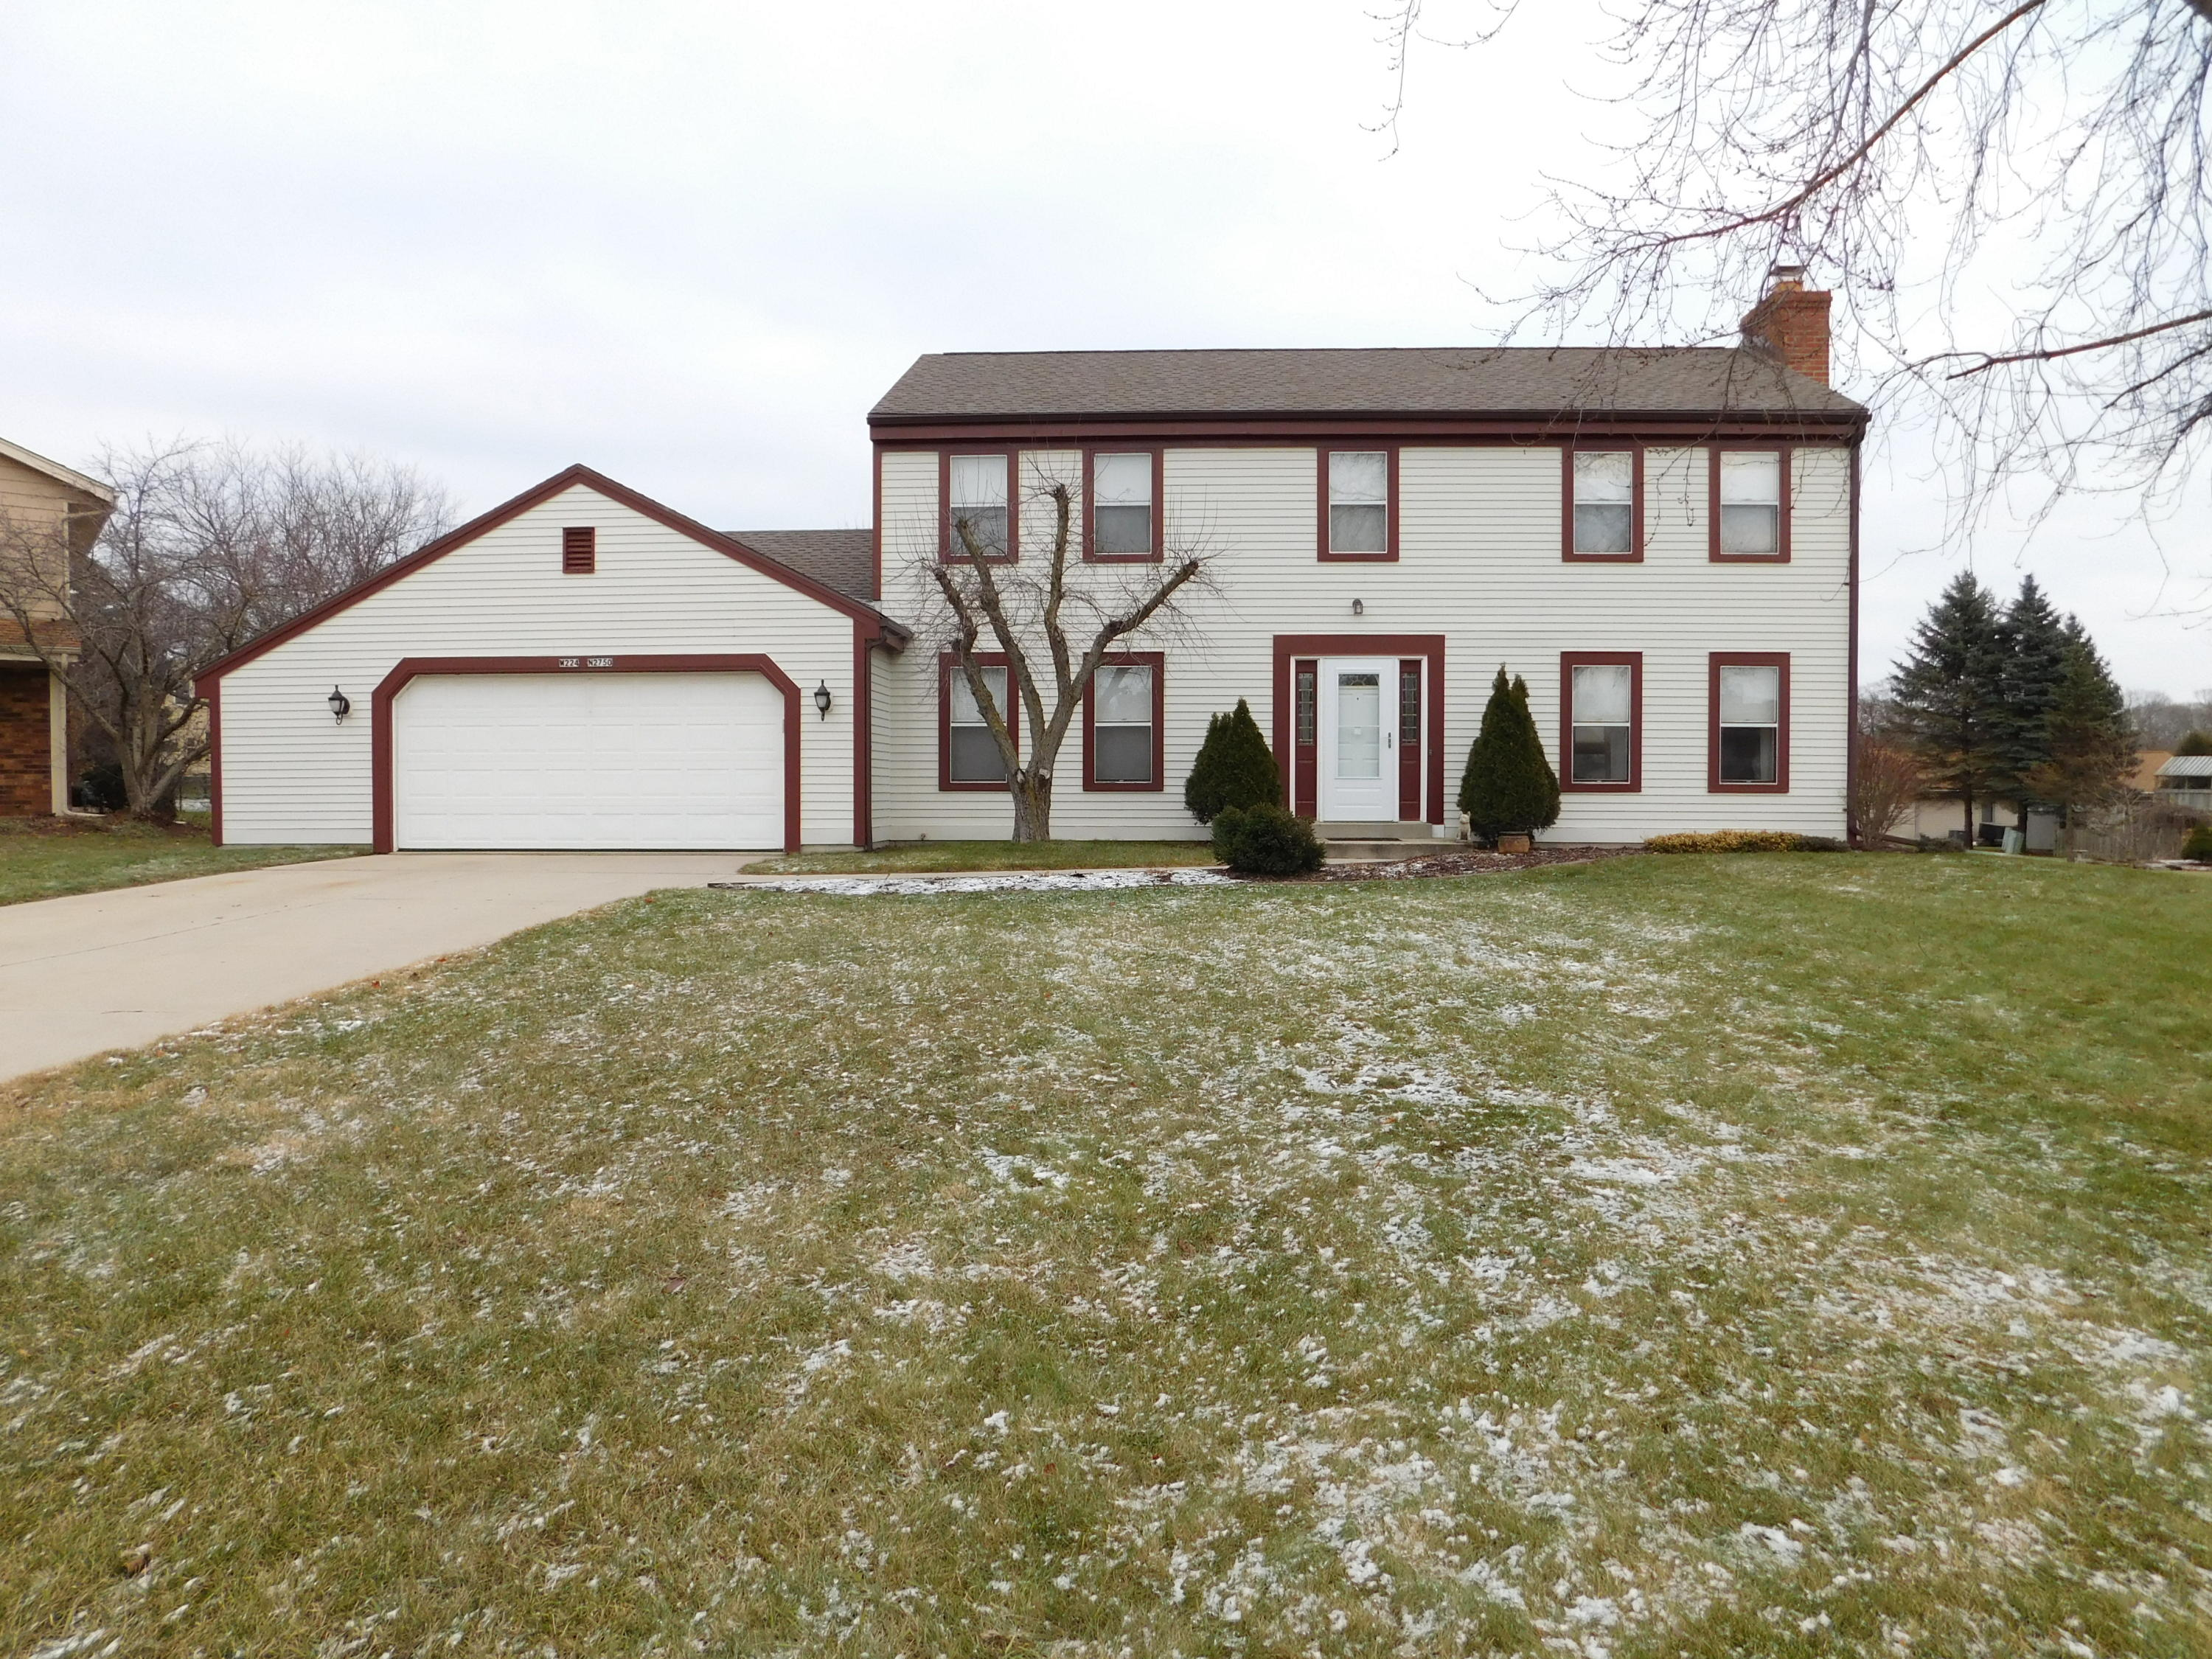 W224N2750 Burwood Ct, Pewaukee, Wisconsin 53186, 4 Bedrooms Bedrooms, 8 Rooms Rooms,2 BathroomsBathrooms,Single-Family,For Sale,Burwood Ct,1616197